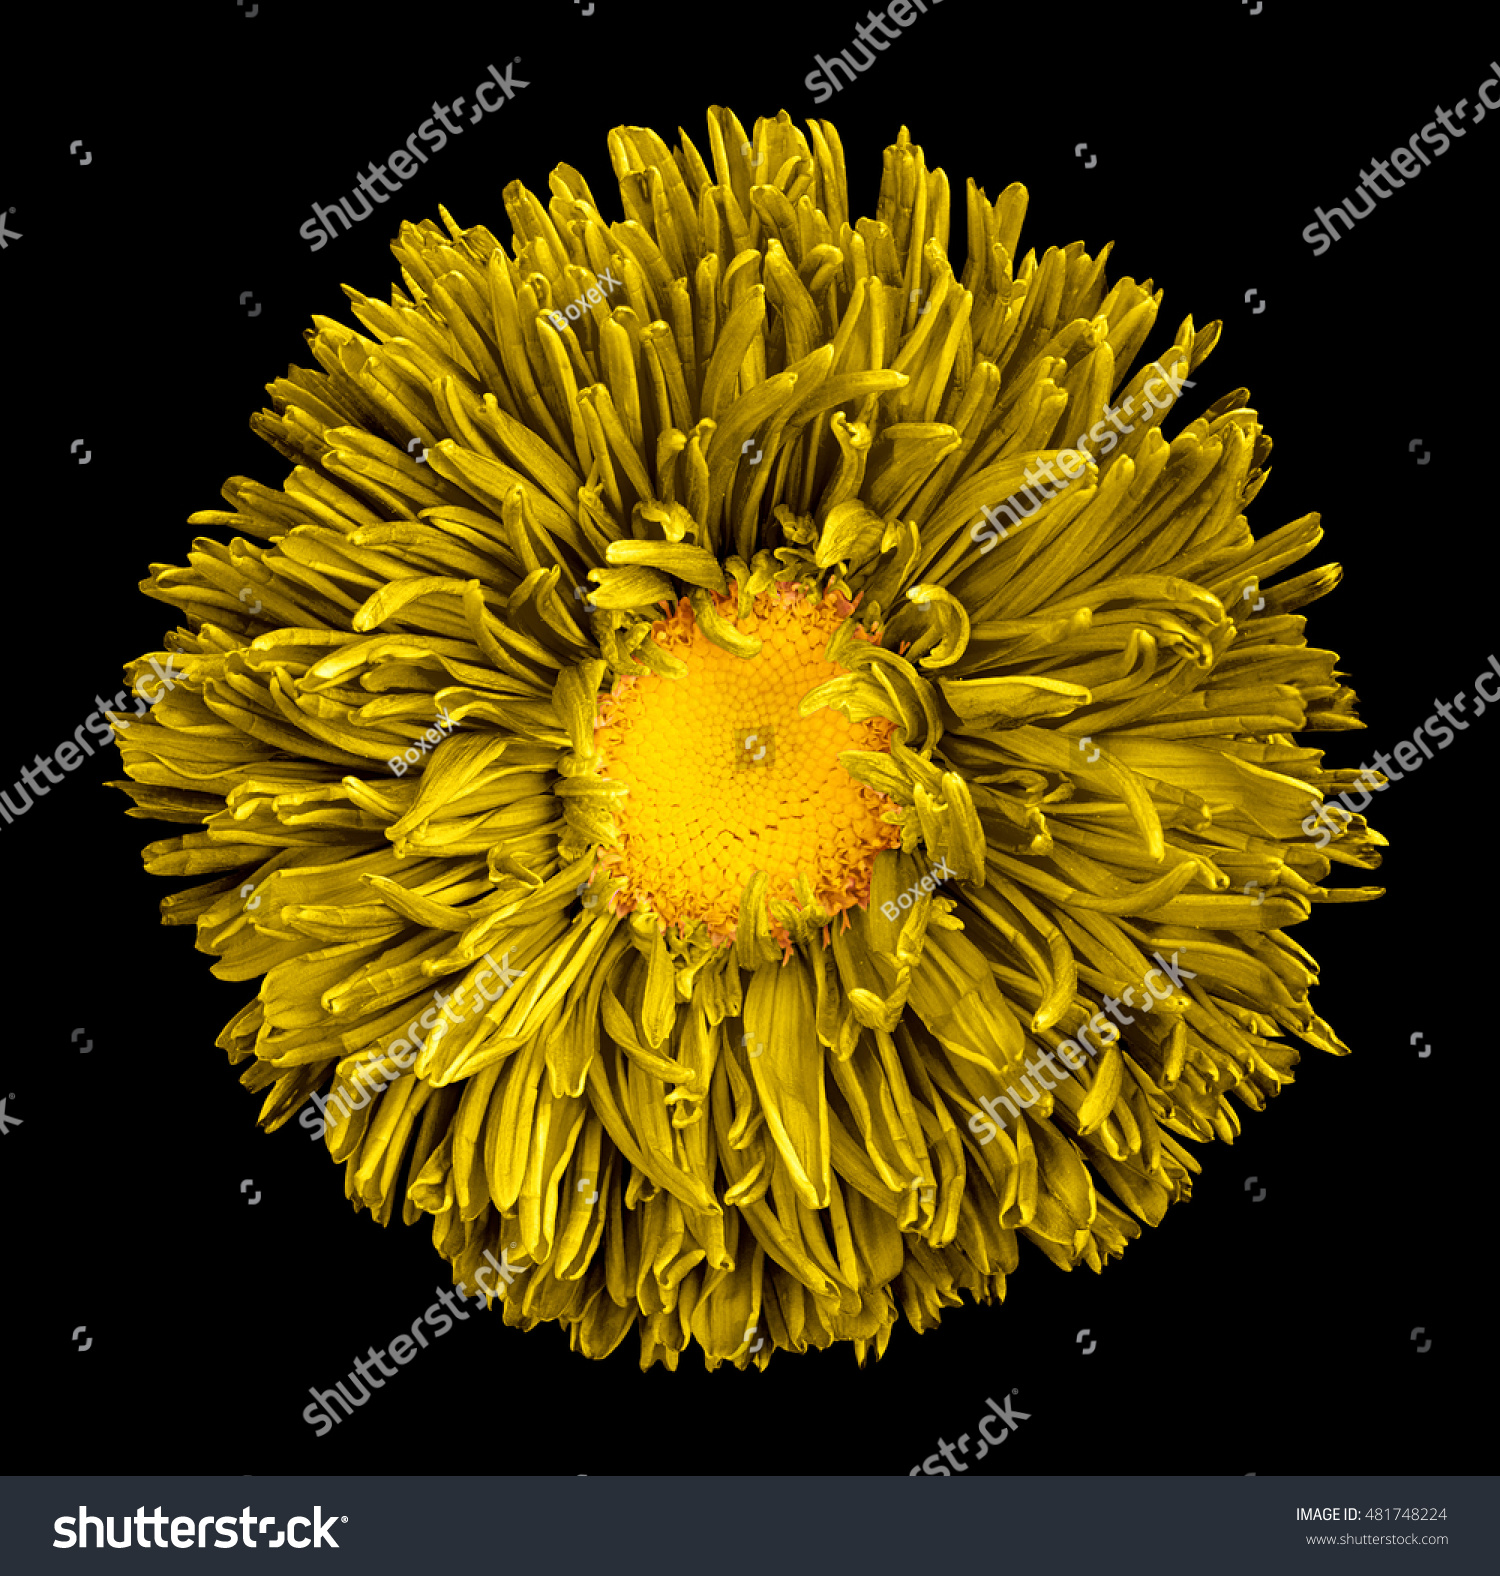 Yellow Aster Flower With Yellow Heart Macro Photography Isolated On